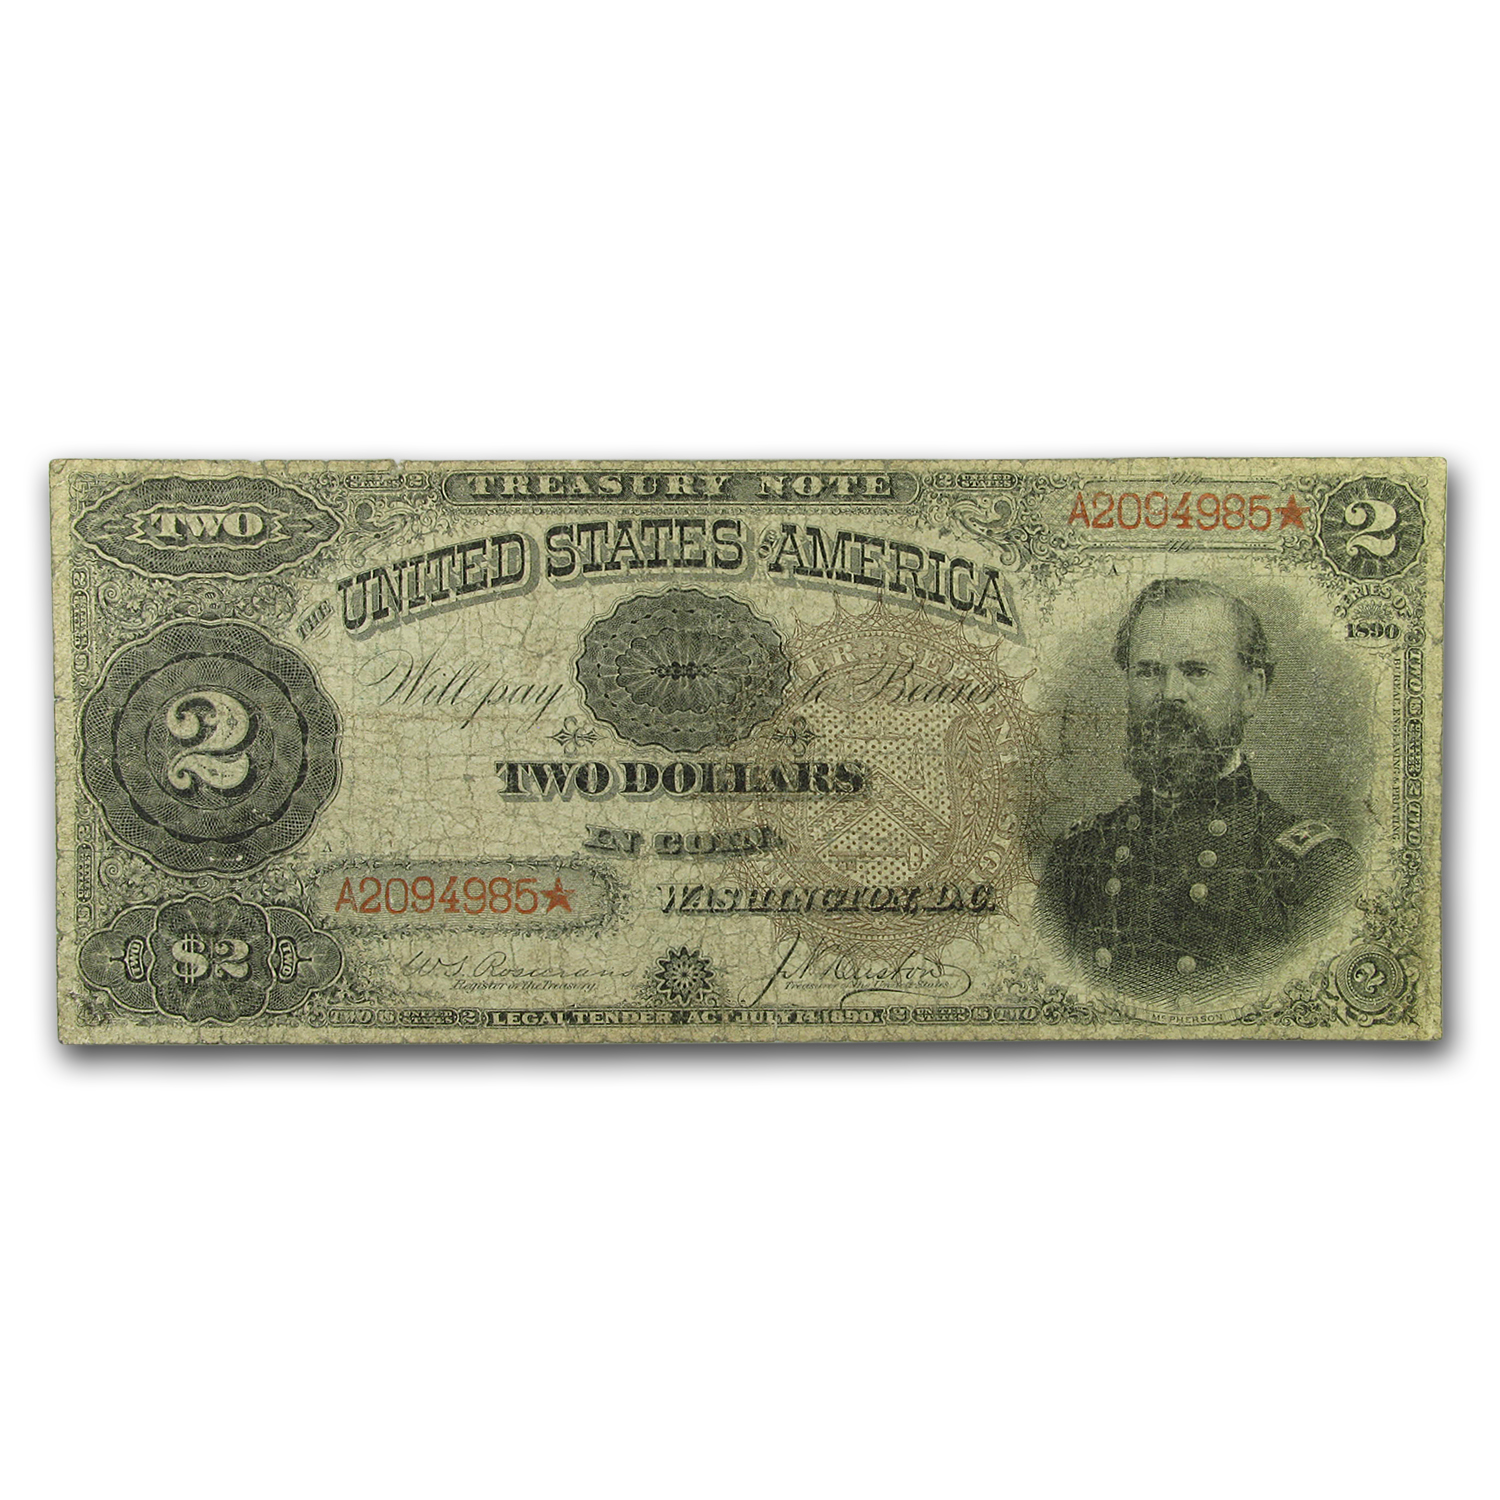 1890 $2.00 Treasury Note VG